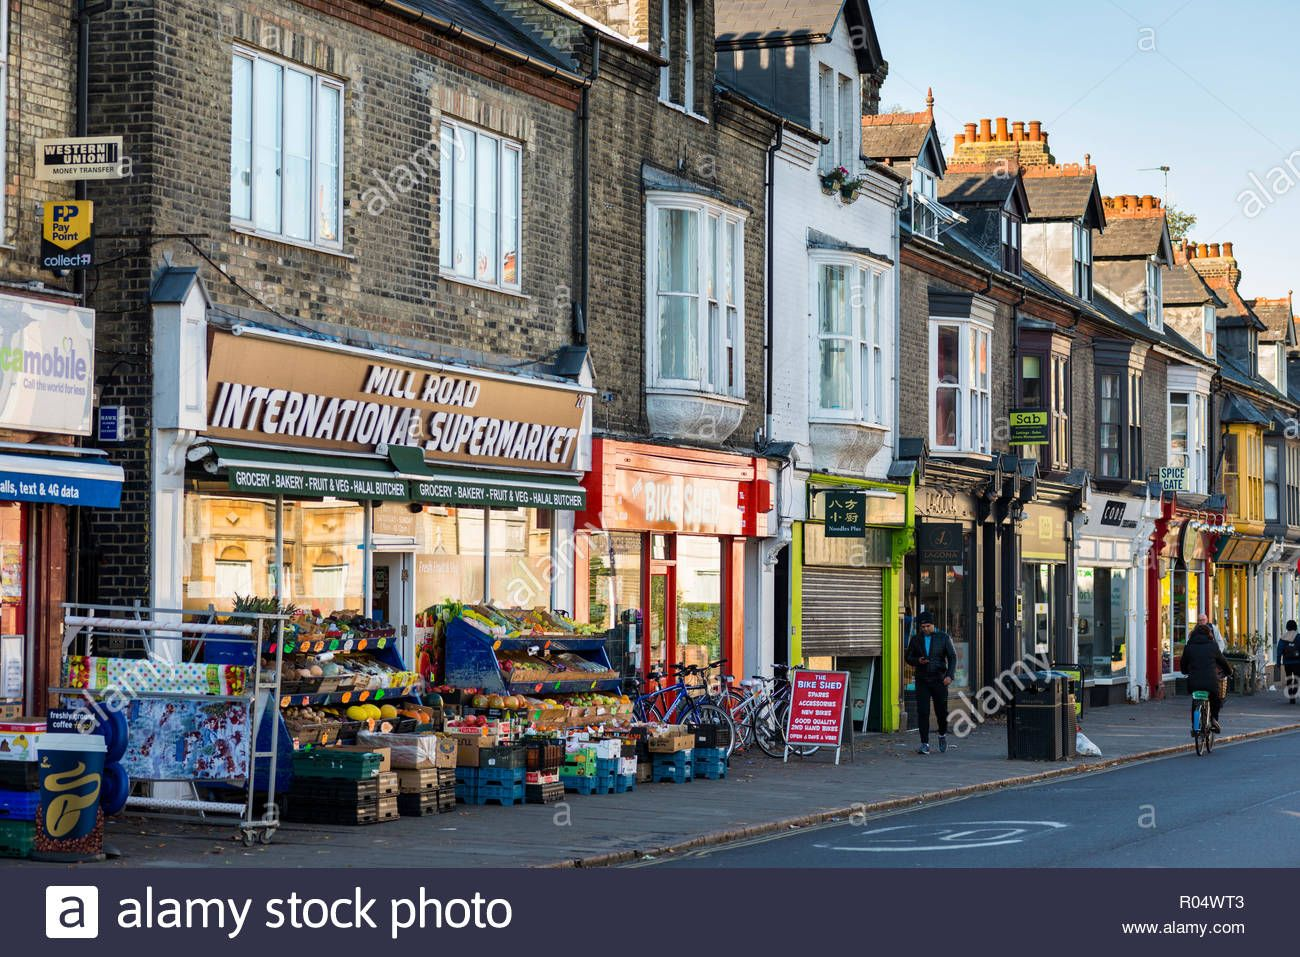 Download This Stock Image Mill Road Is One Of Cambridge S Most Vibrant Destinations With Independent Cafes Quirky Shops An Grocery Store Stock Photos Grocery